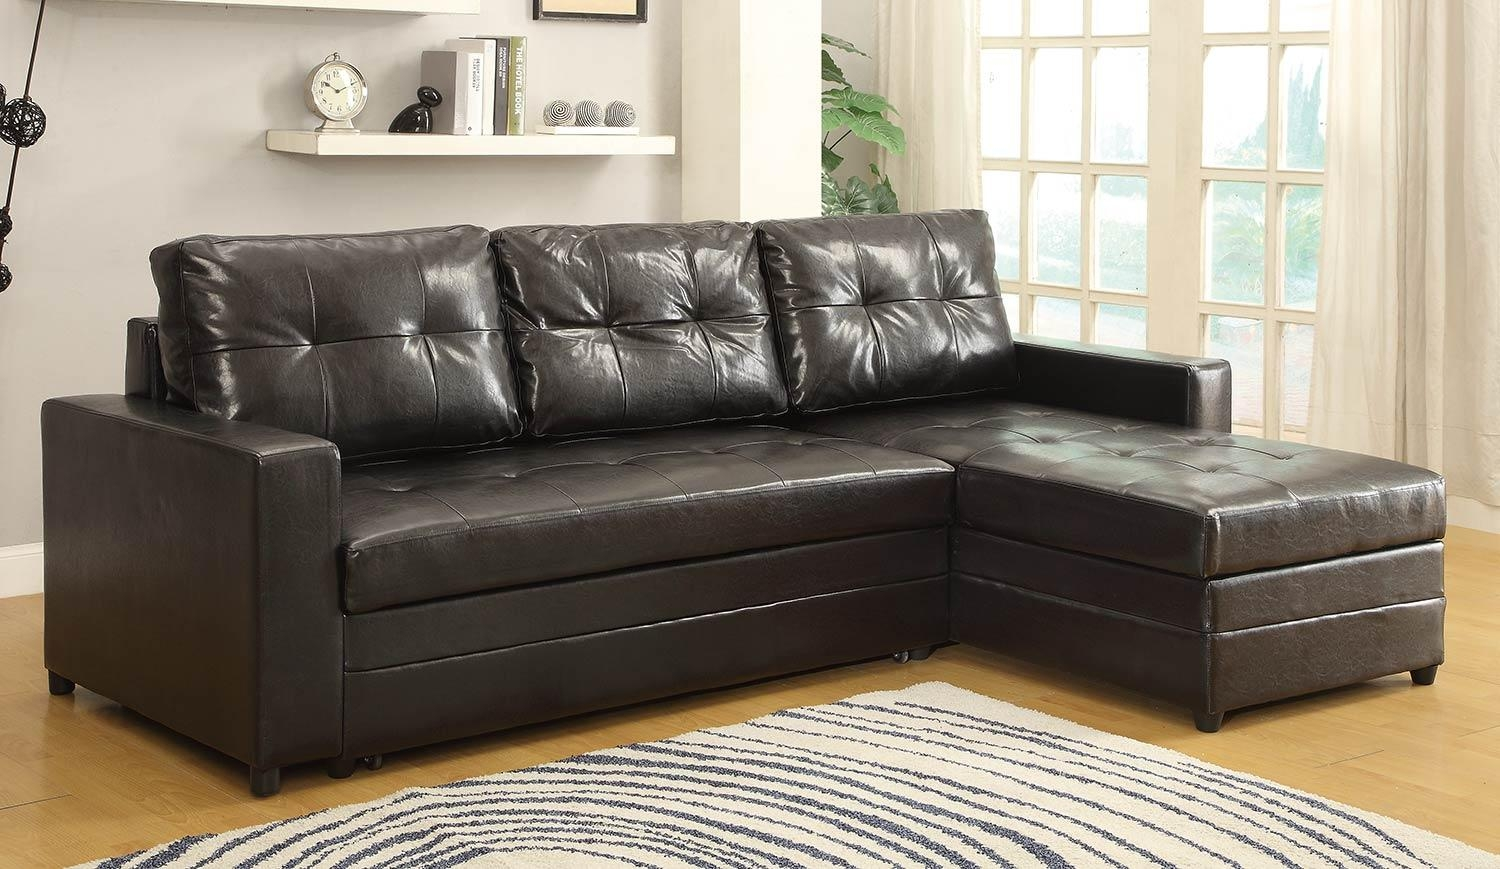 Homelegance Kemen Elegant Lounger Sofa Bed – Dark Brown 4837 Throughout Sofa Lounger Beds (Image 9 of 20)